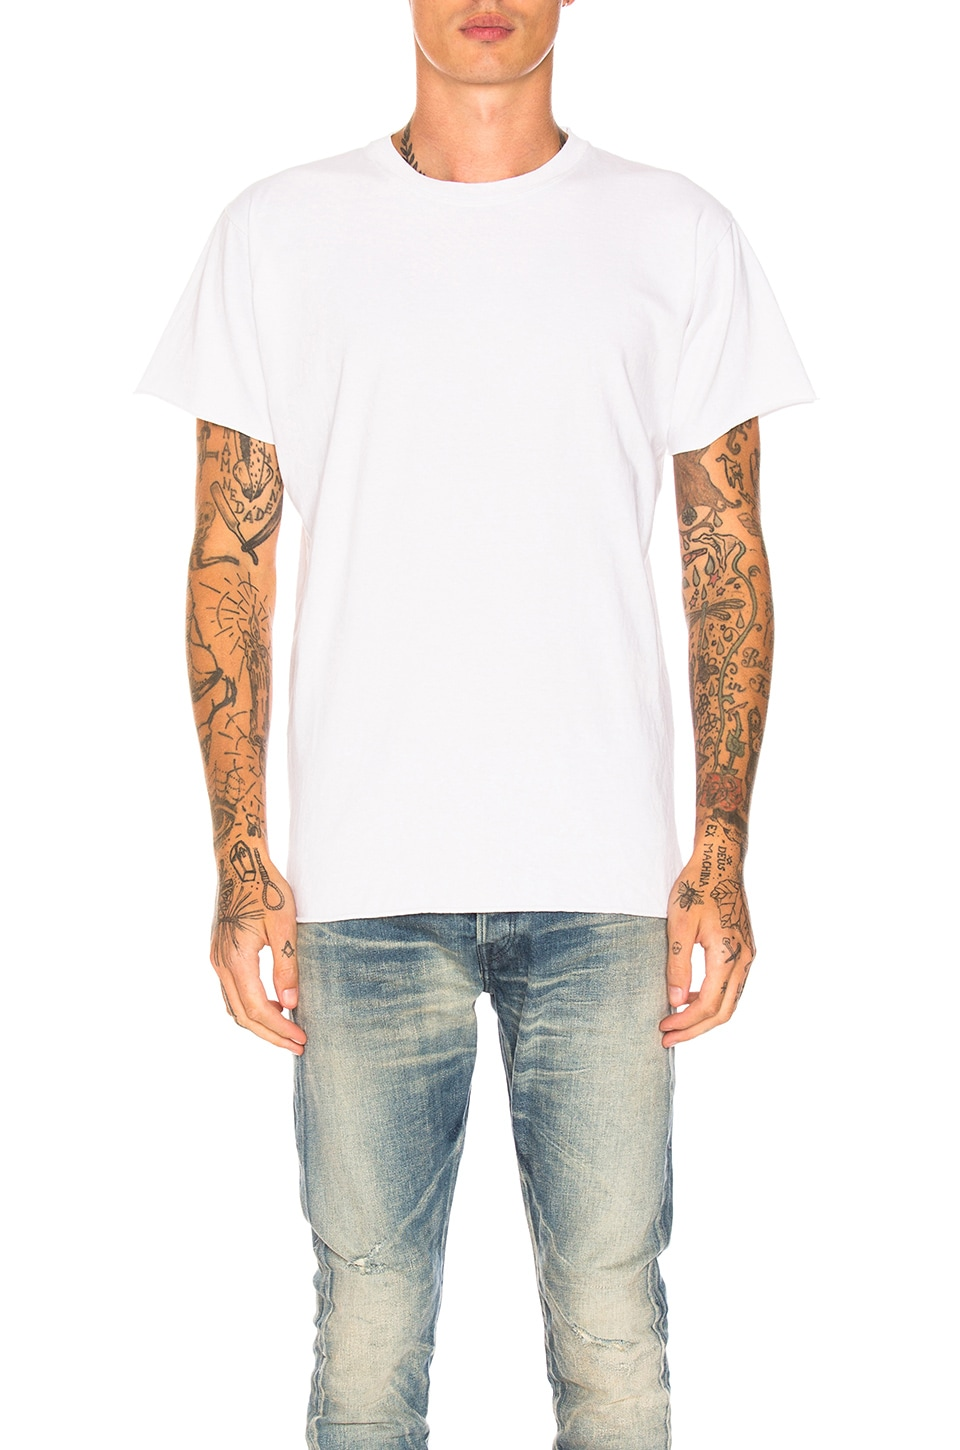 JOHN ELLIOTT Anti-Expo Tee in White